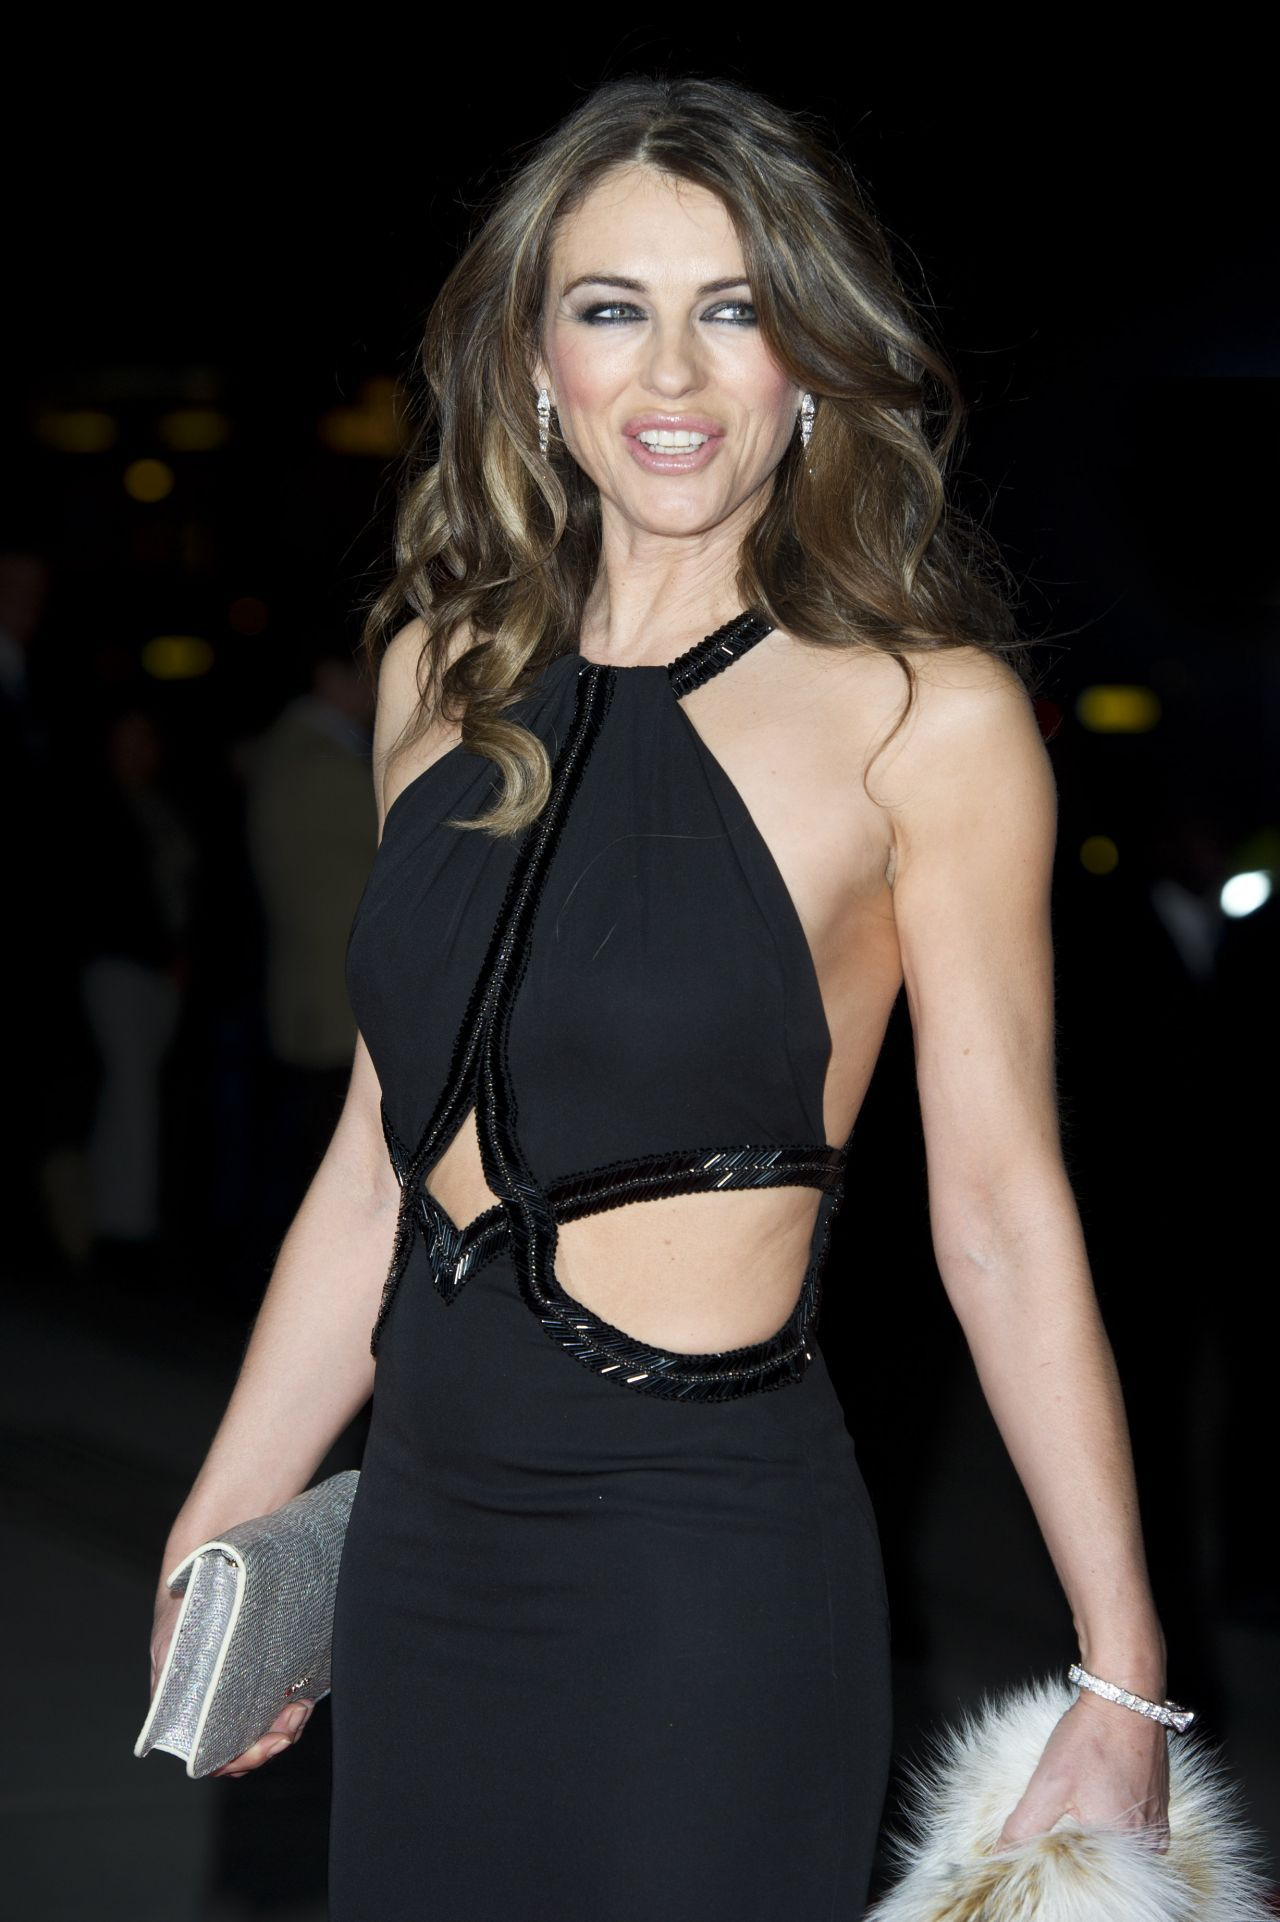 Elizabeth Hurley - The Glamour Of Italian Fashion 1945 - 2015 - Private Dinner in London-1